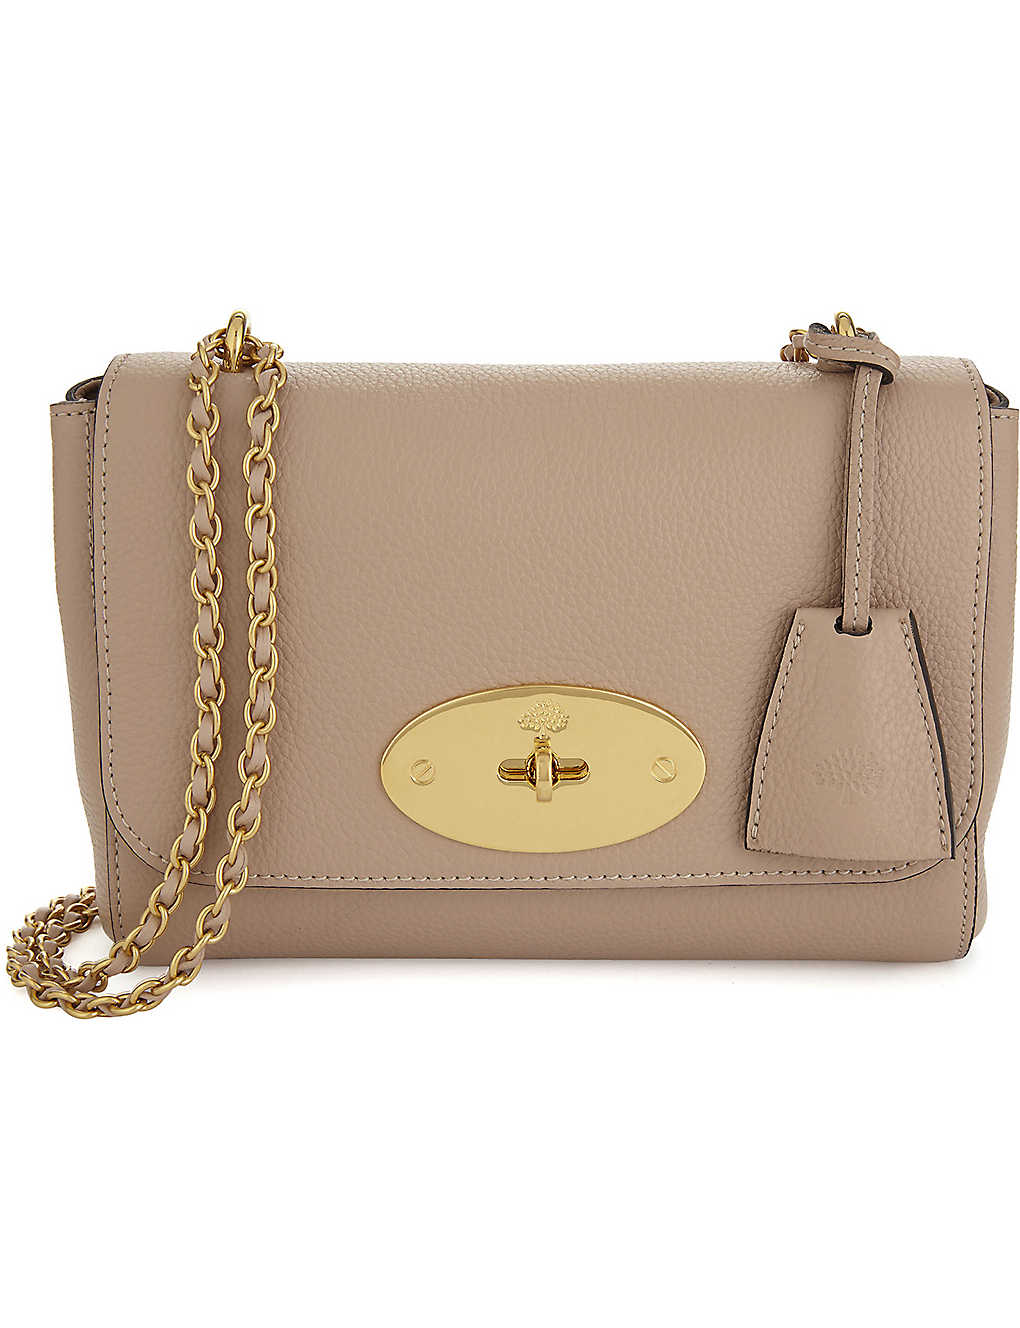 MULBERRY - Lily small grained leather shoulder bag  c330adab7db7f